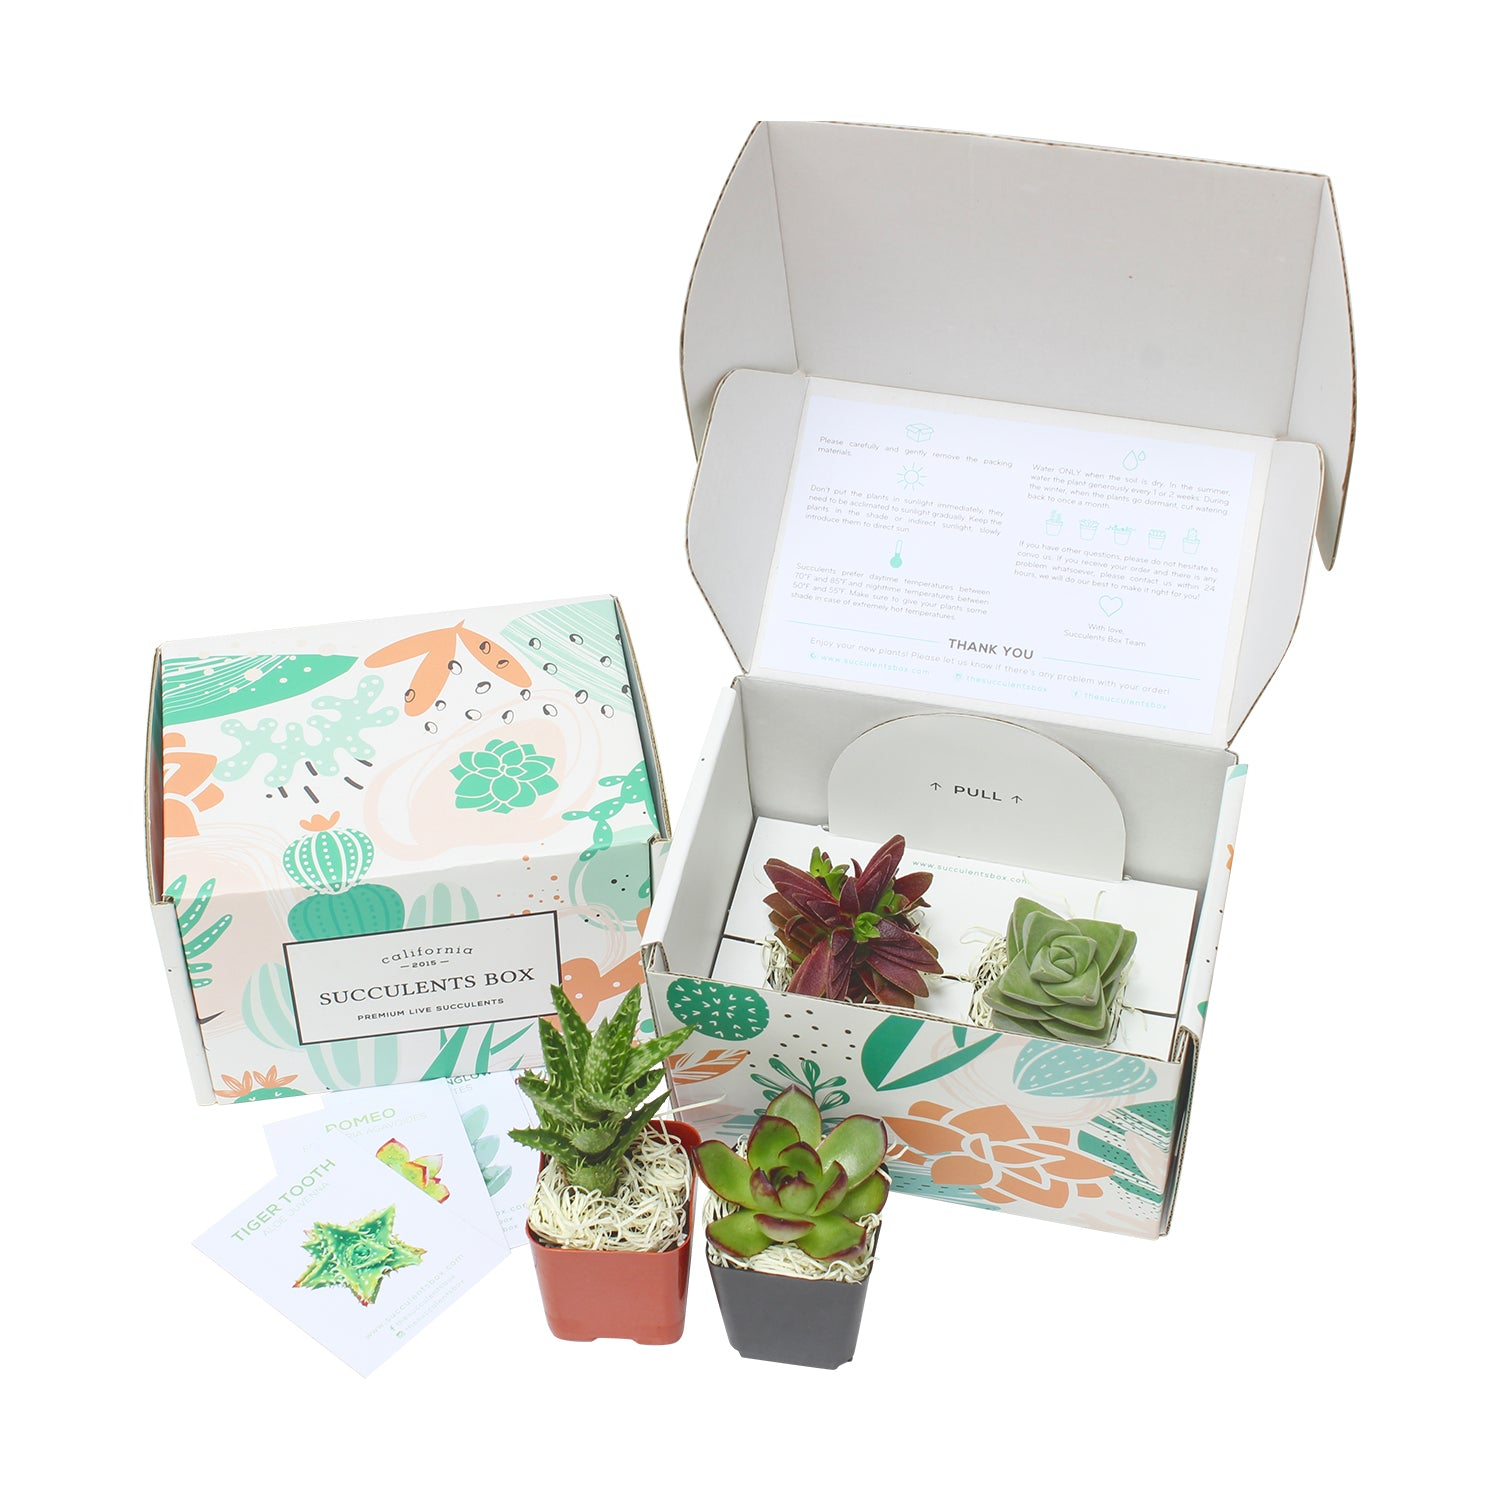 Premium Succulent Subscription Boxes delivered monthly